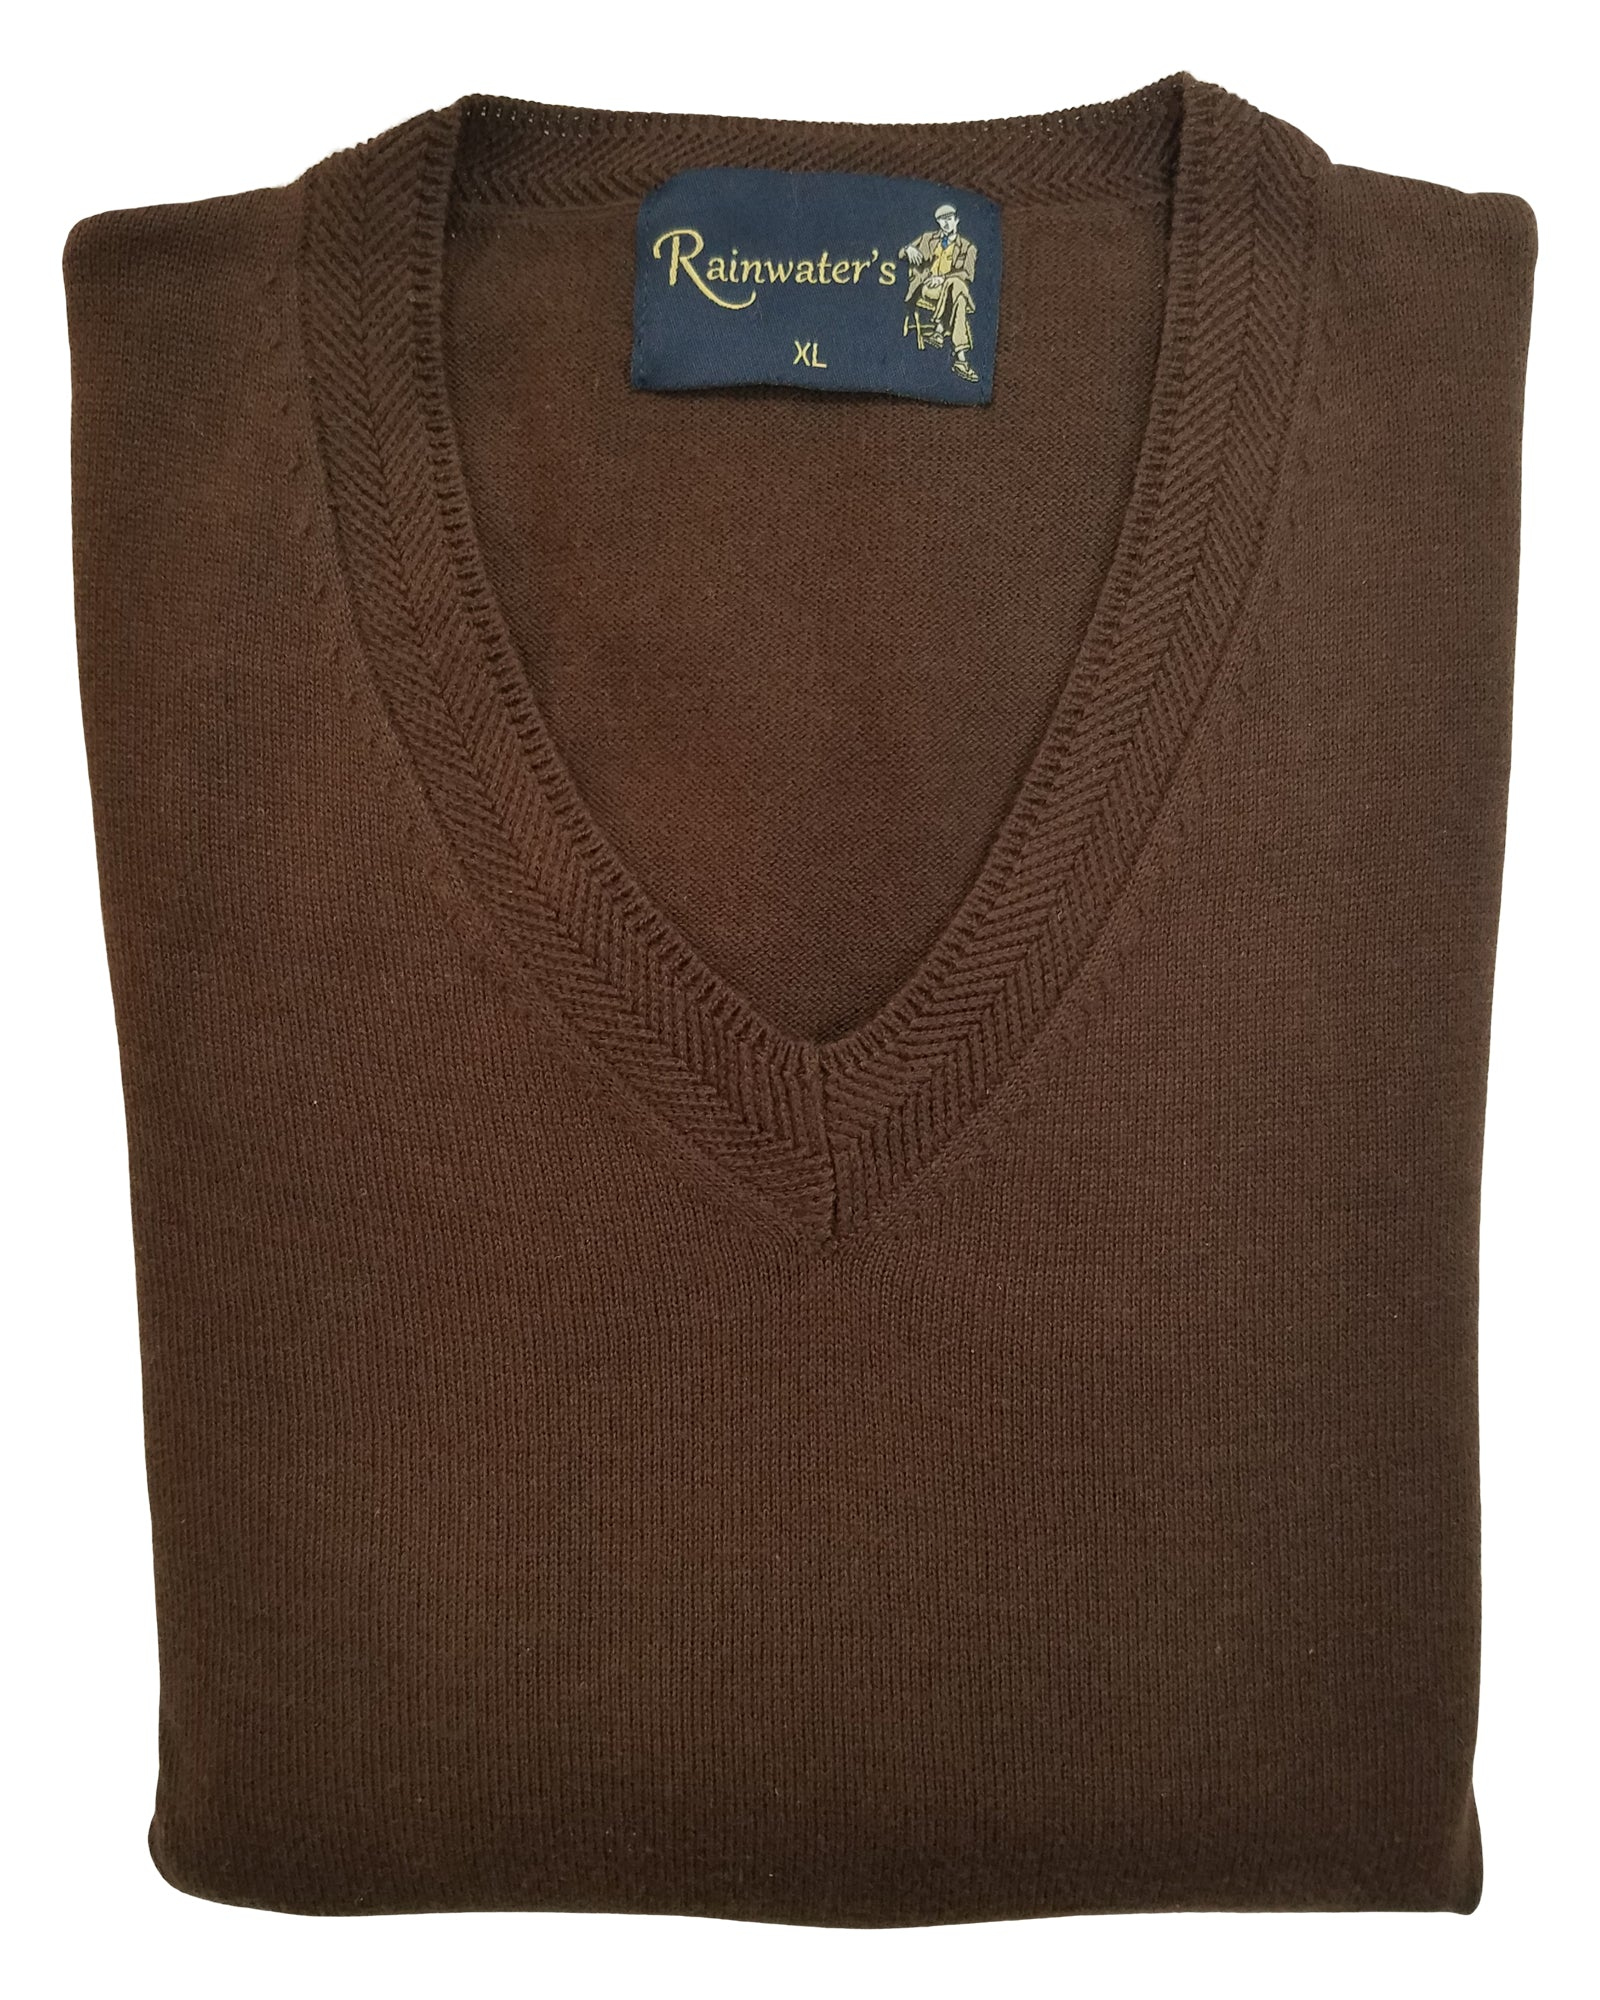 V-Neck Sweater in Brown Cotton Blend - Rainwater's Men's Clothing and Tuxedo Rental